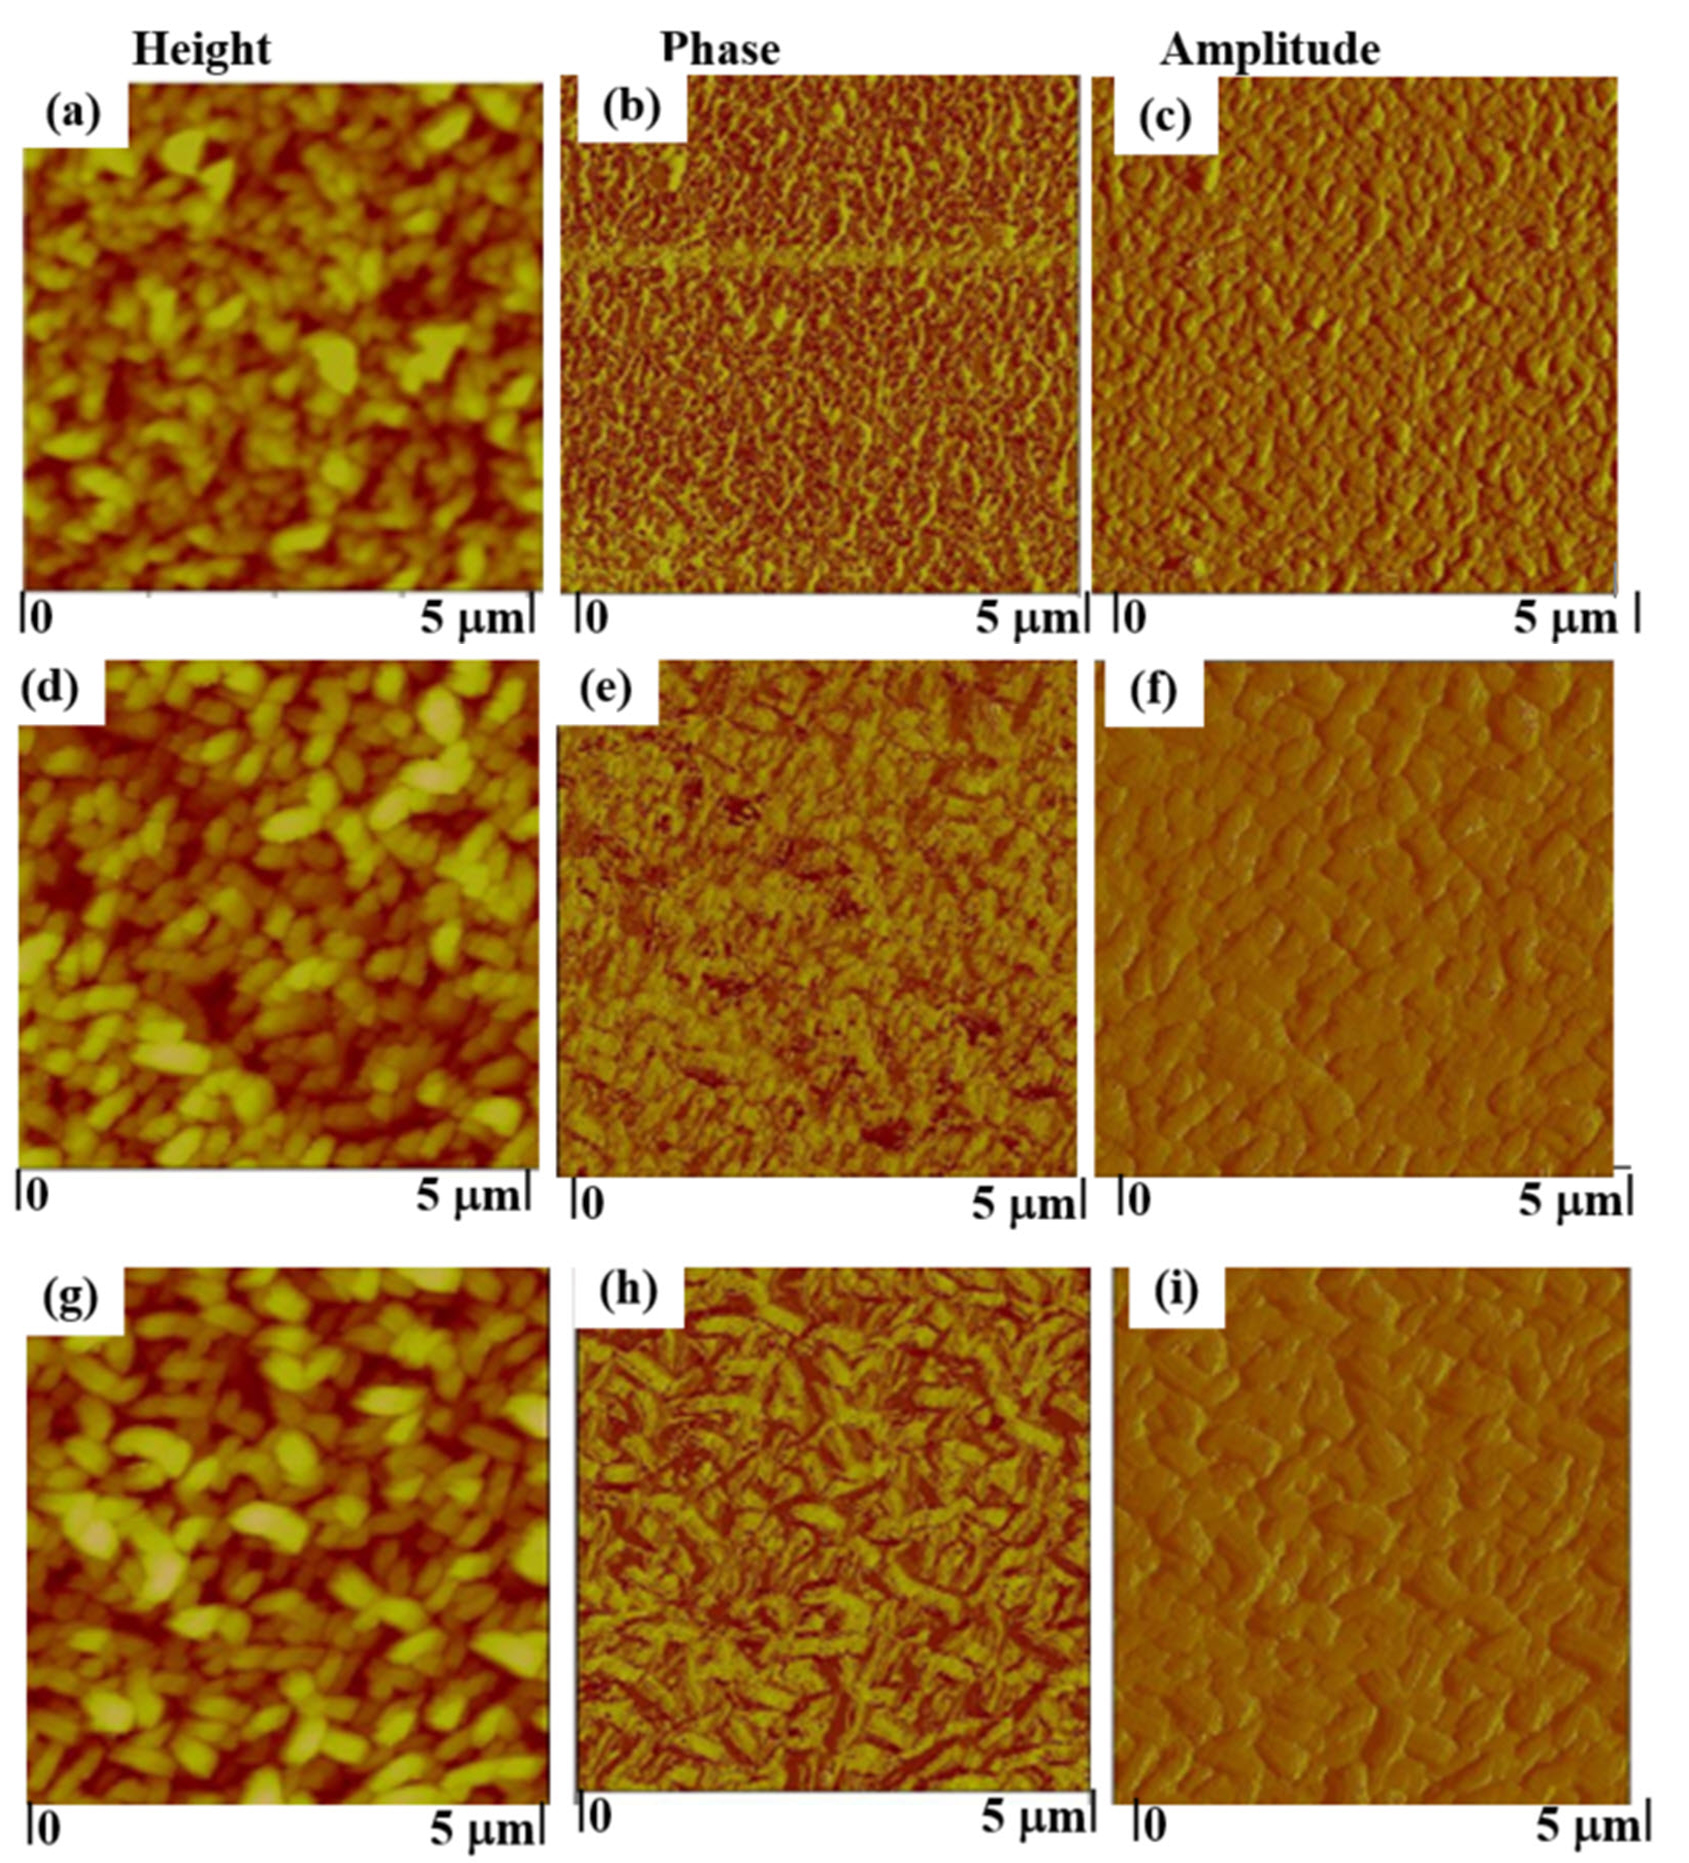 Figure 8. Atomic Force Microscopy images of pristine (a-c) and hydrogenated FLGs [(d-f) @ 50oC and (g-i) @200oC].